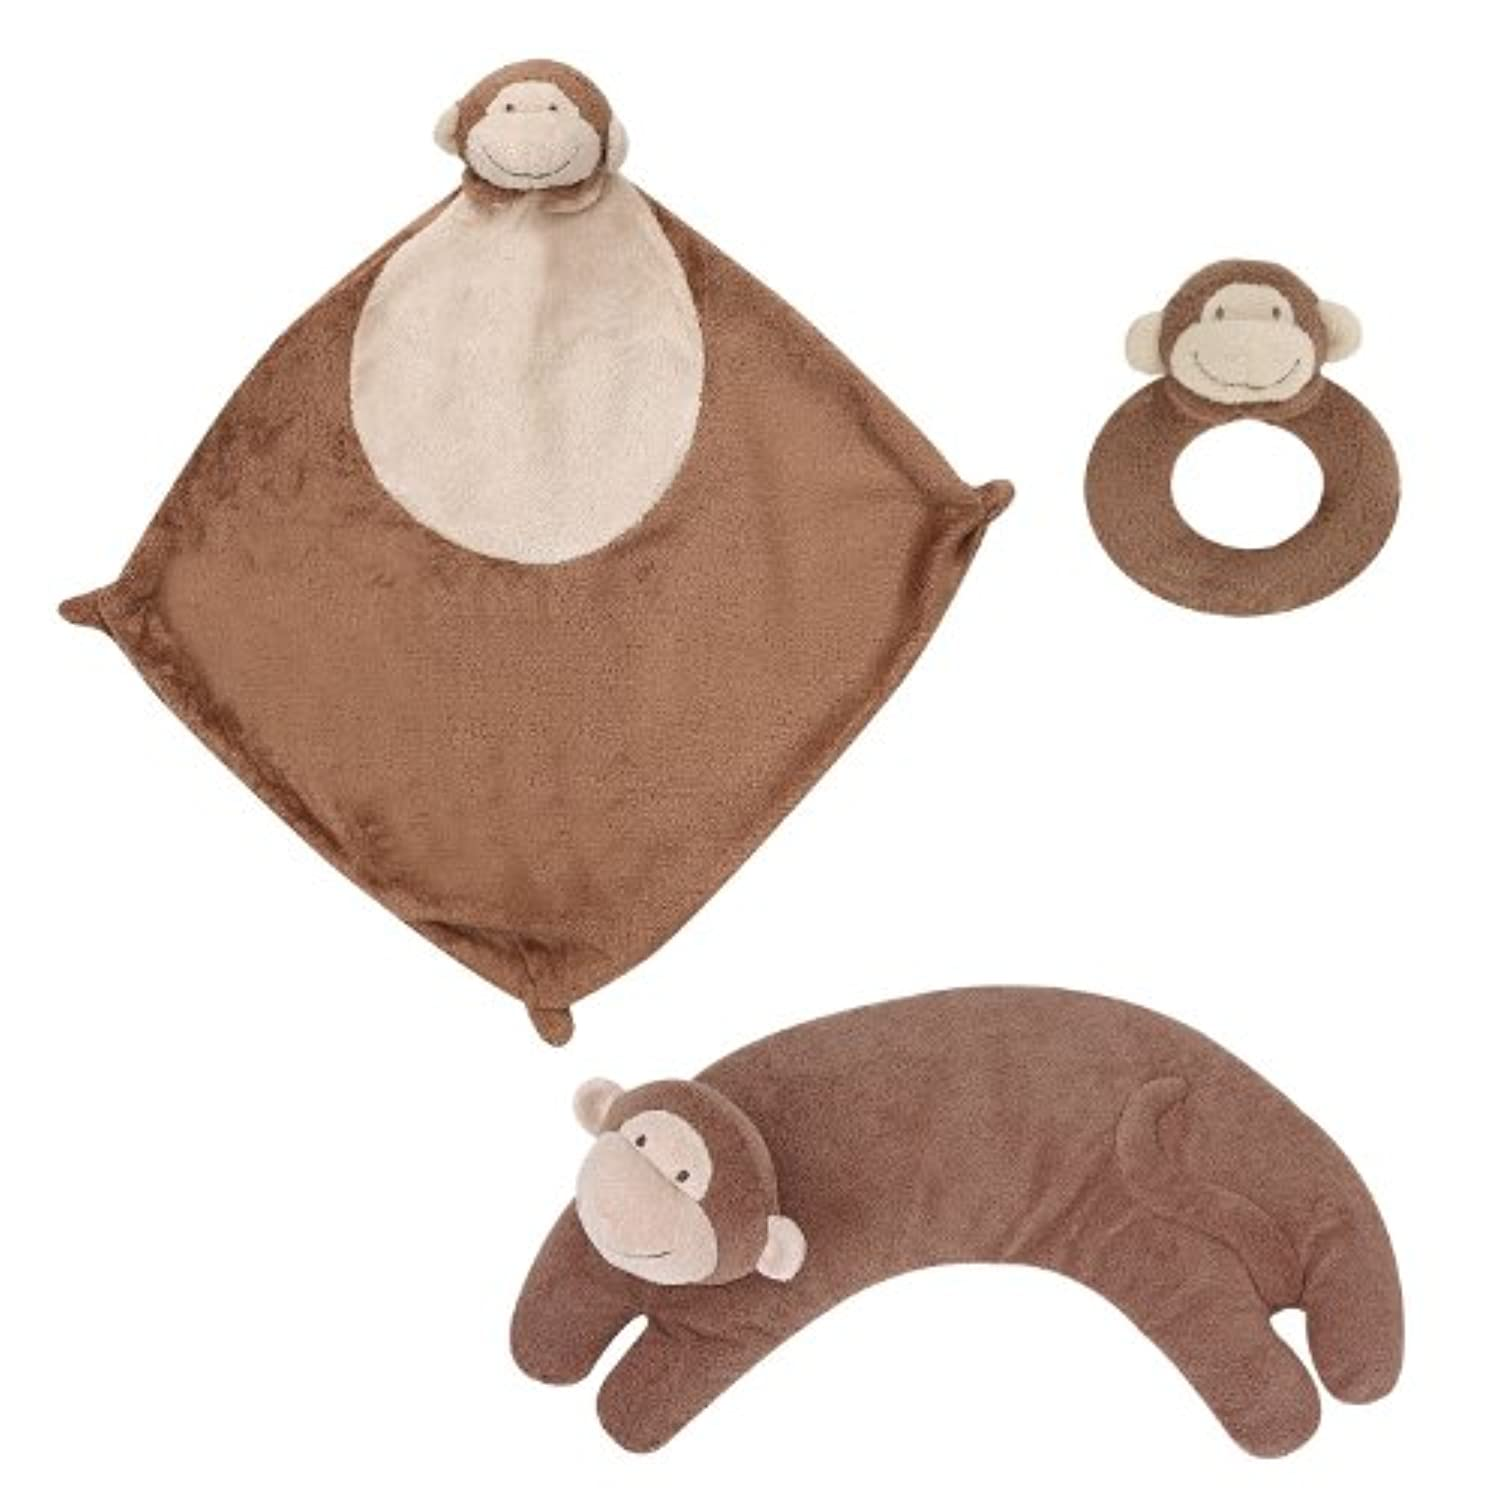 Angel Dear Blankie, Ring Rattle and Curved Pillow Set (Monkey) by Angel Dear